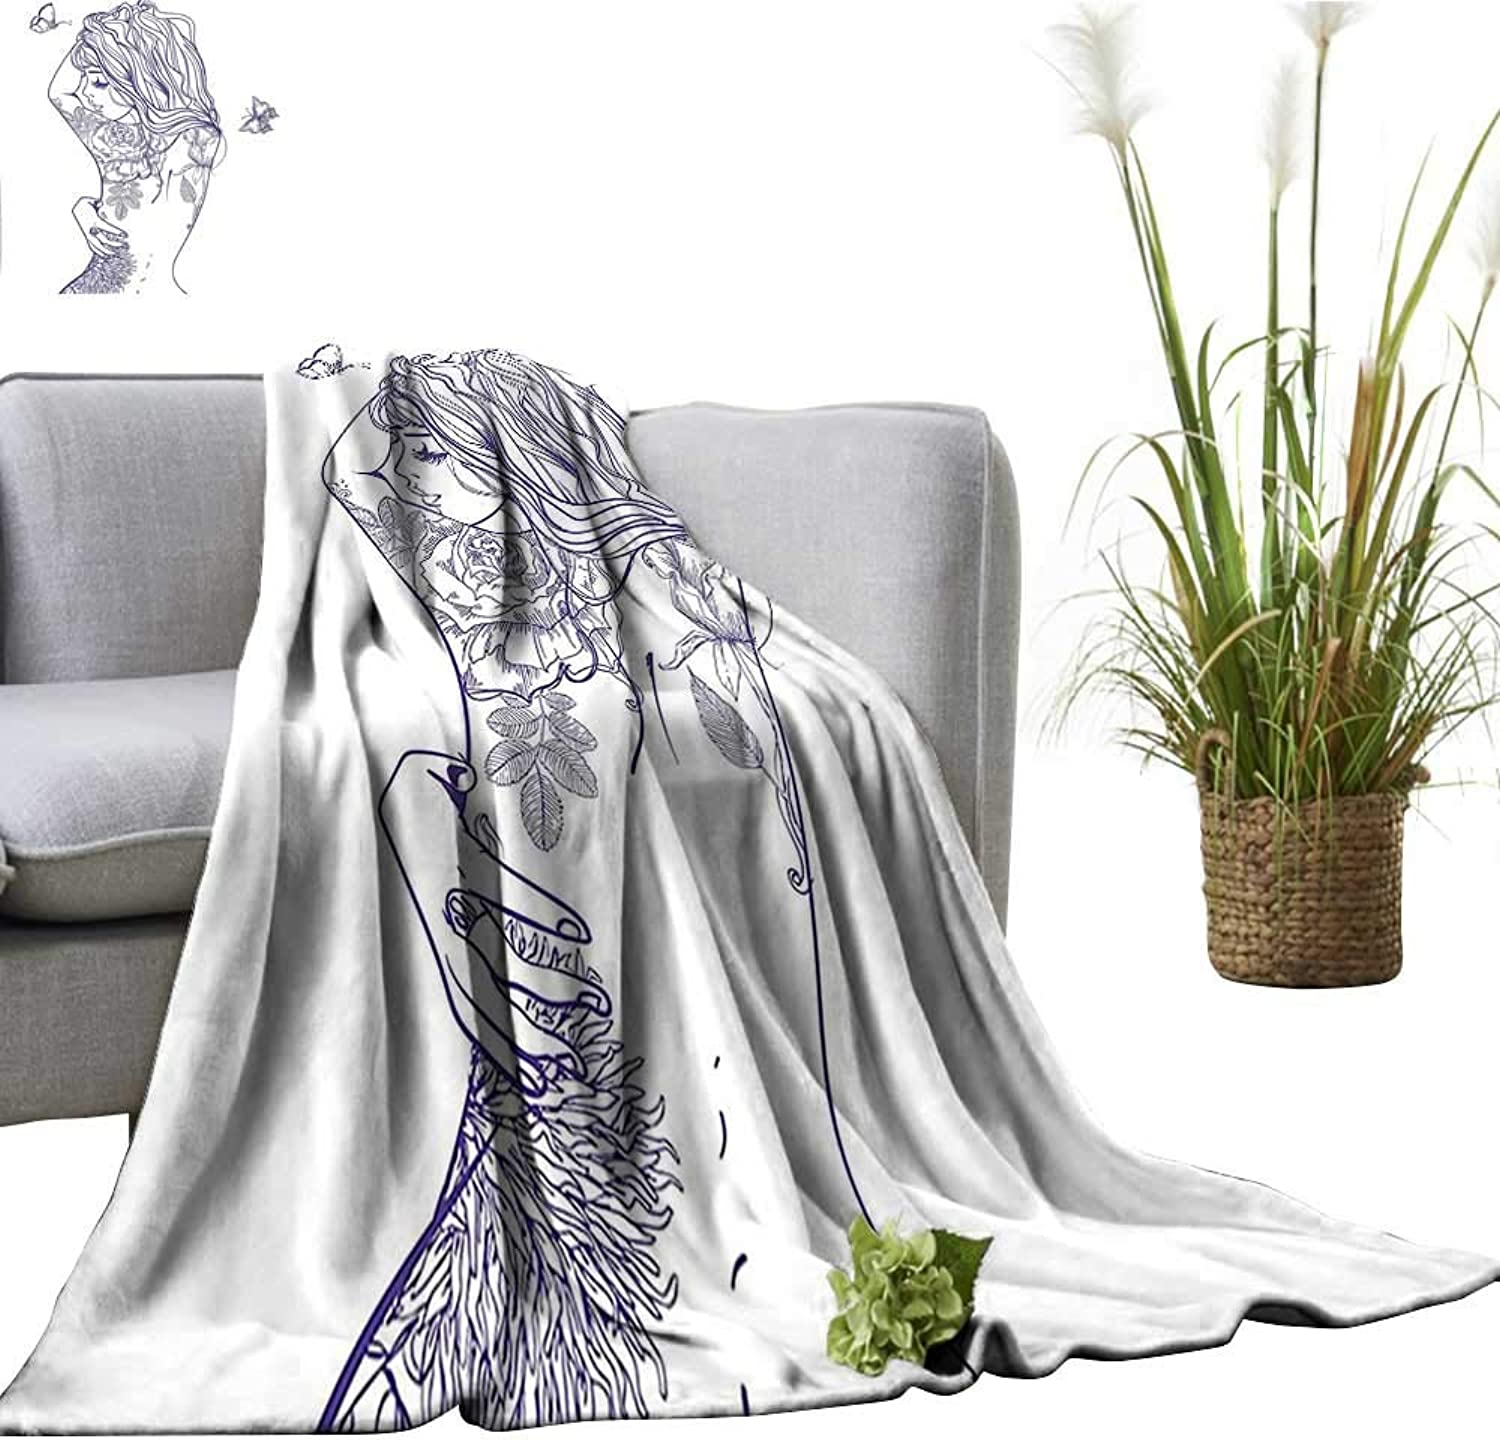 Digital Printing Blanket Young Girl with Tattoos and Butterflies Free Your Soul Inspired Long Hair Feminine Better Deeper Sleep 50 x70